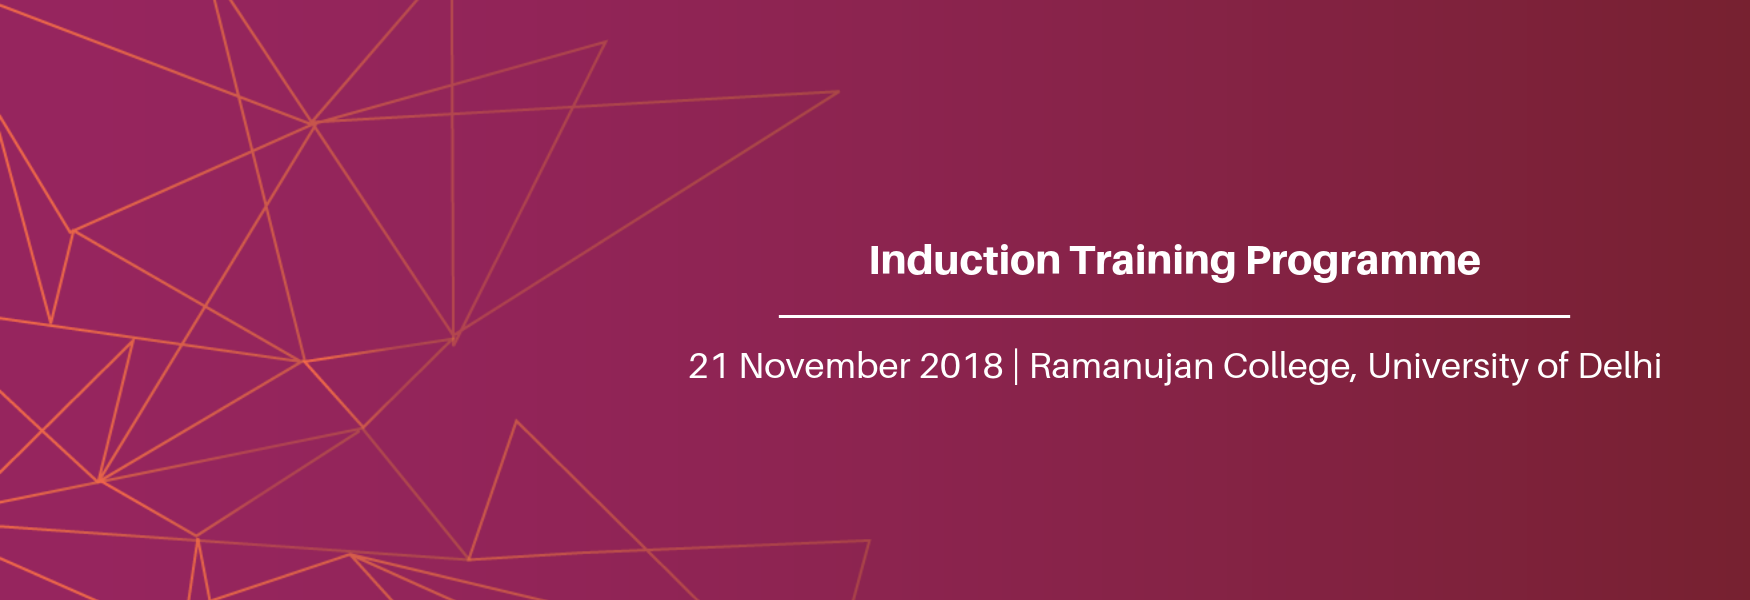 Induction Training Programme